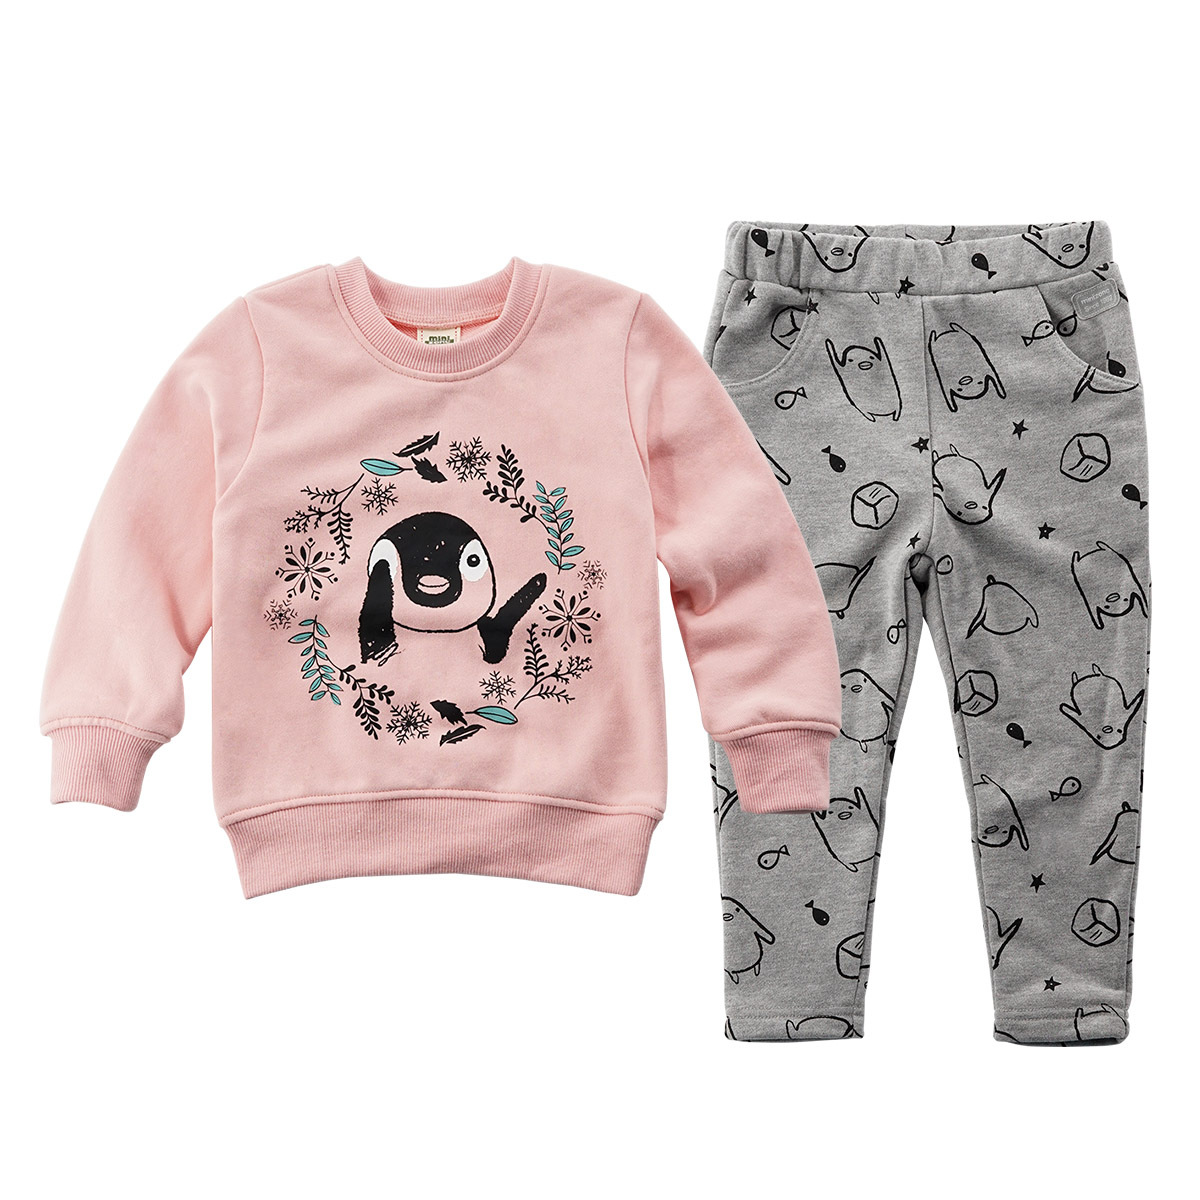 7eb0420475c3 aliexpress.com - 2018 Orangemom Baby New Style Clothes Baby Boys ...